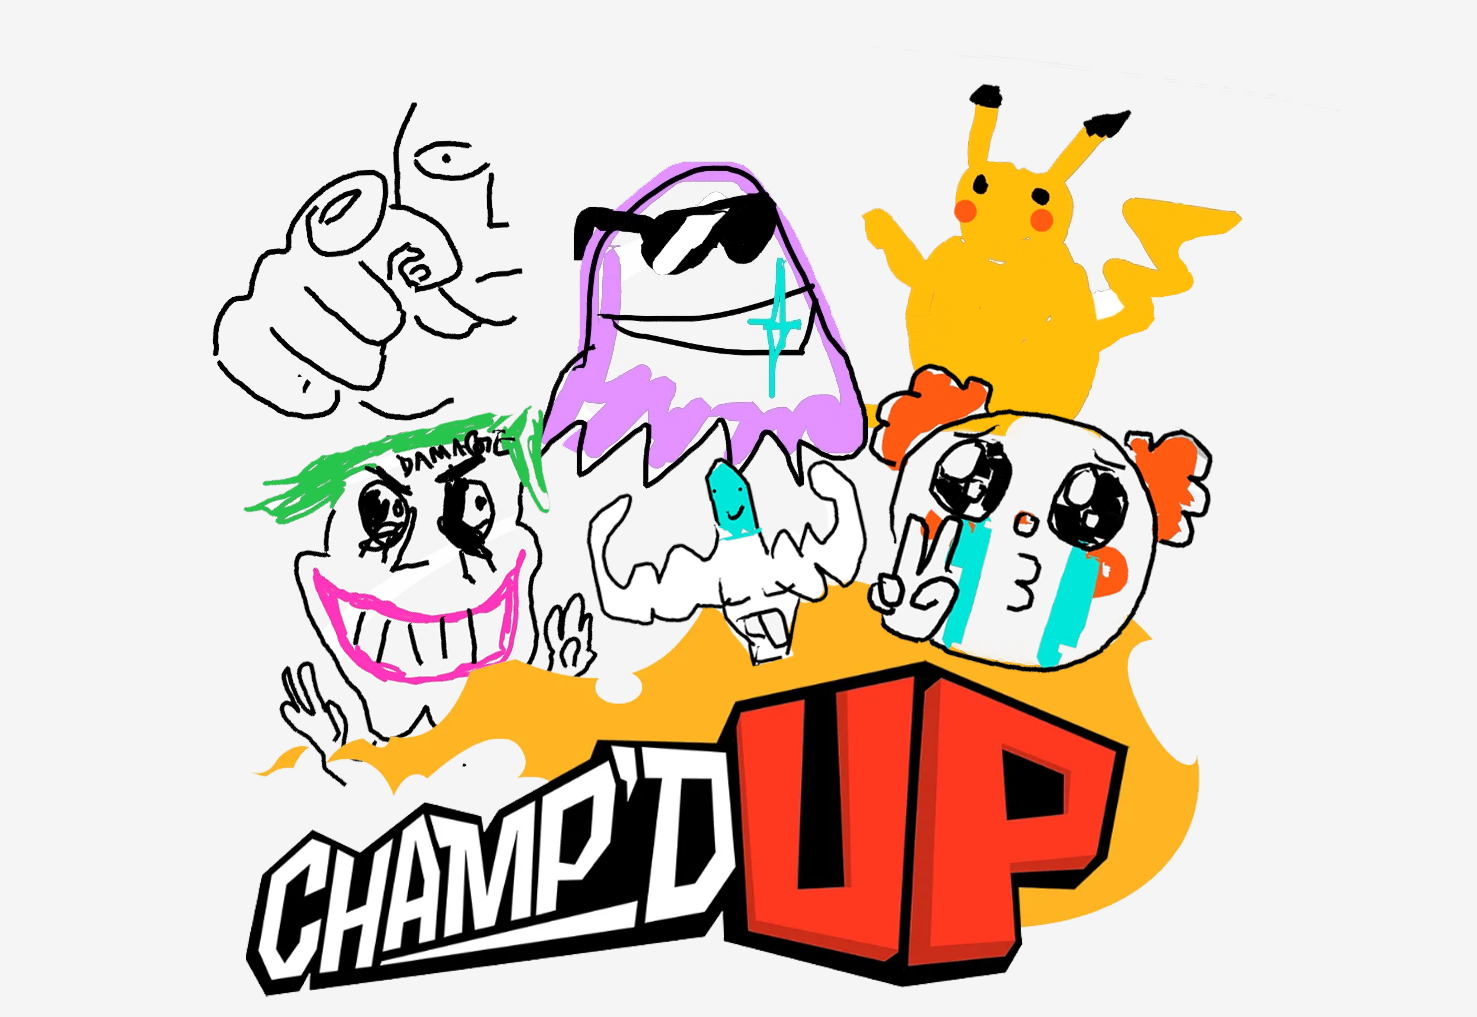 A group of hand drawn characters including a squid thing with sunglasses, a satirical joker, a crying clown emoji and a crude Pikachu hover over Champ'D Up logo